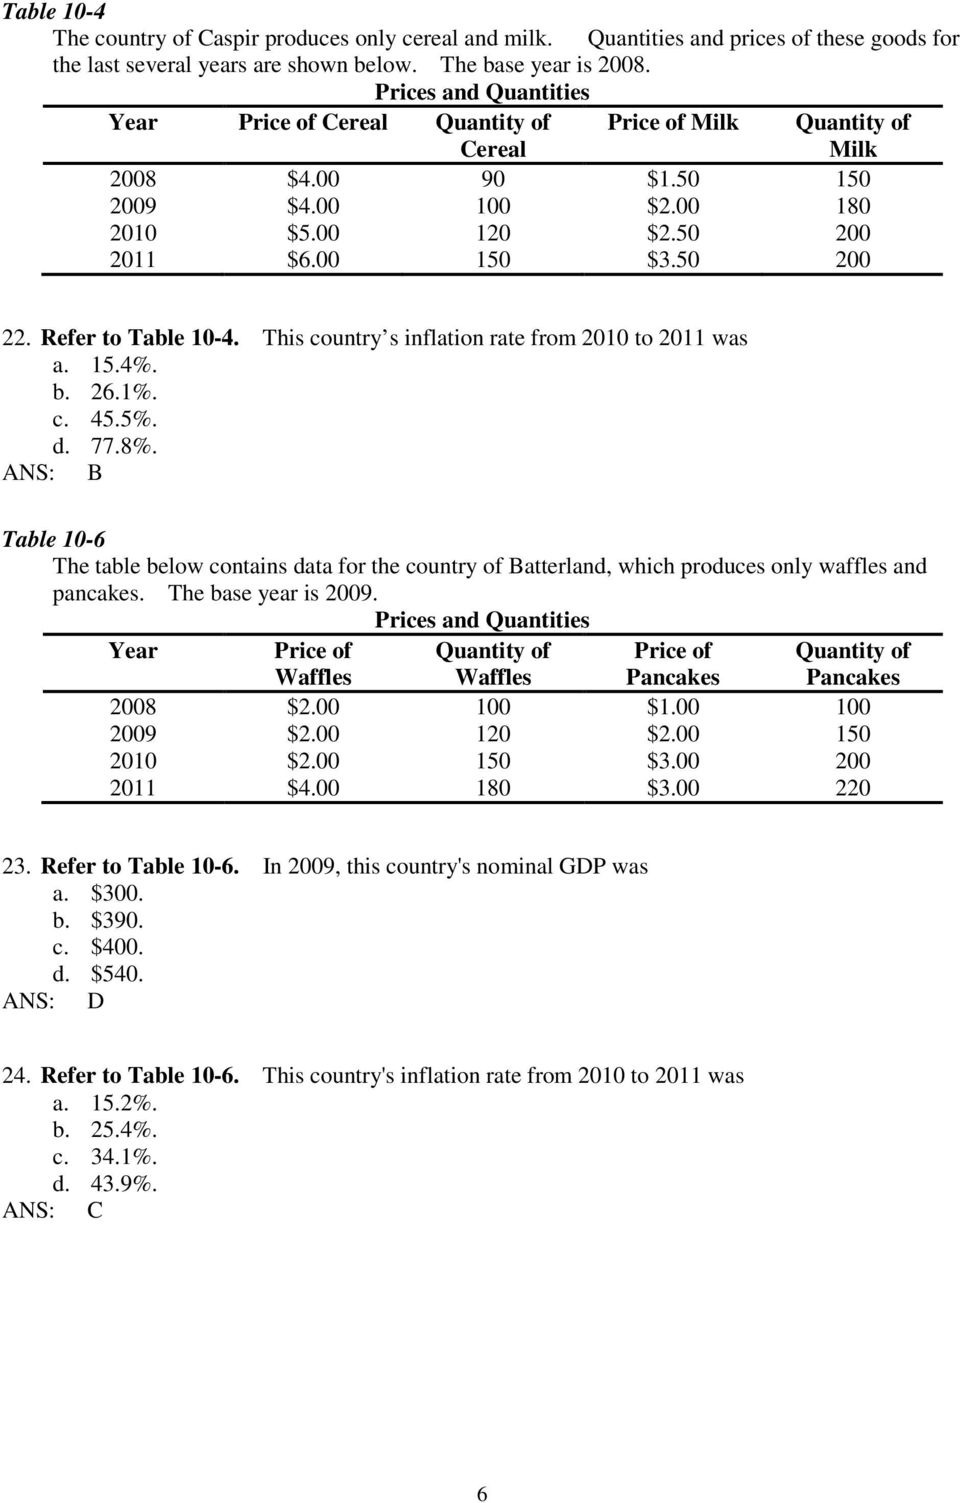 Refer to Table 10-4. This country s inflation rate from 2010 to 2011 was a. 15.4%. b. 26.1%. c. 45.5%. d. 77.8%.